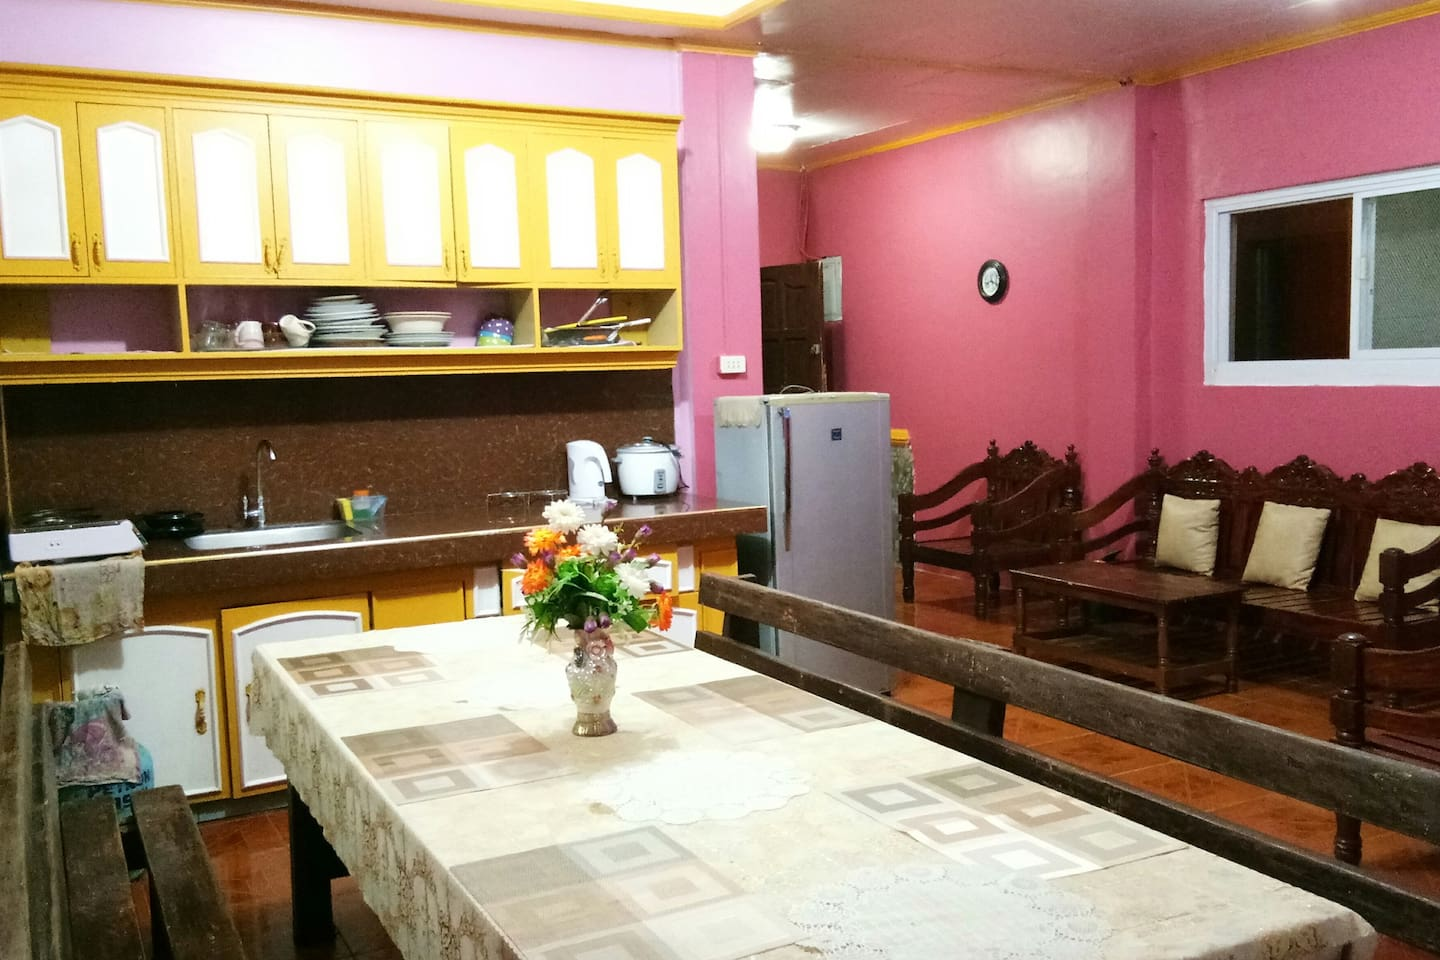 Unit#1 (1F) * dinning and kitchen area